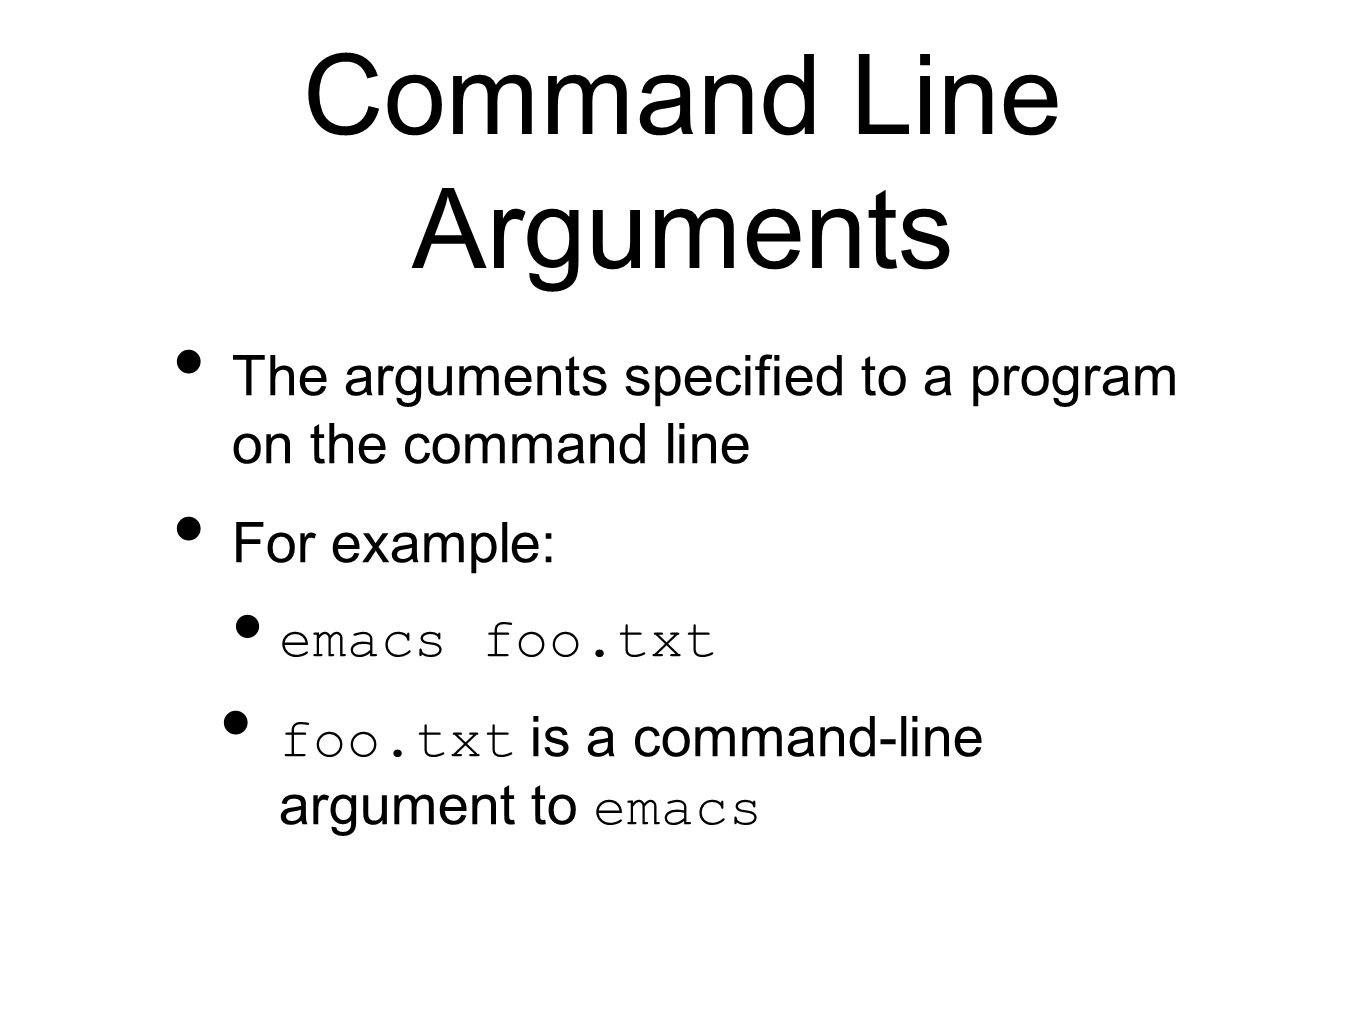 Command Line Arguments The arguments specified to a program on the command line For example: emacs foo.txt foo.txt is a command-line argument to emacs